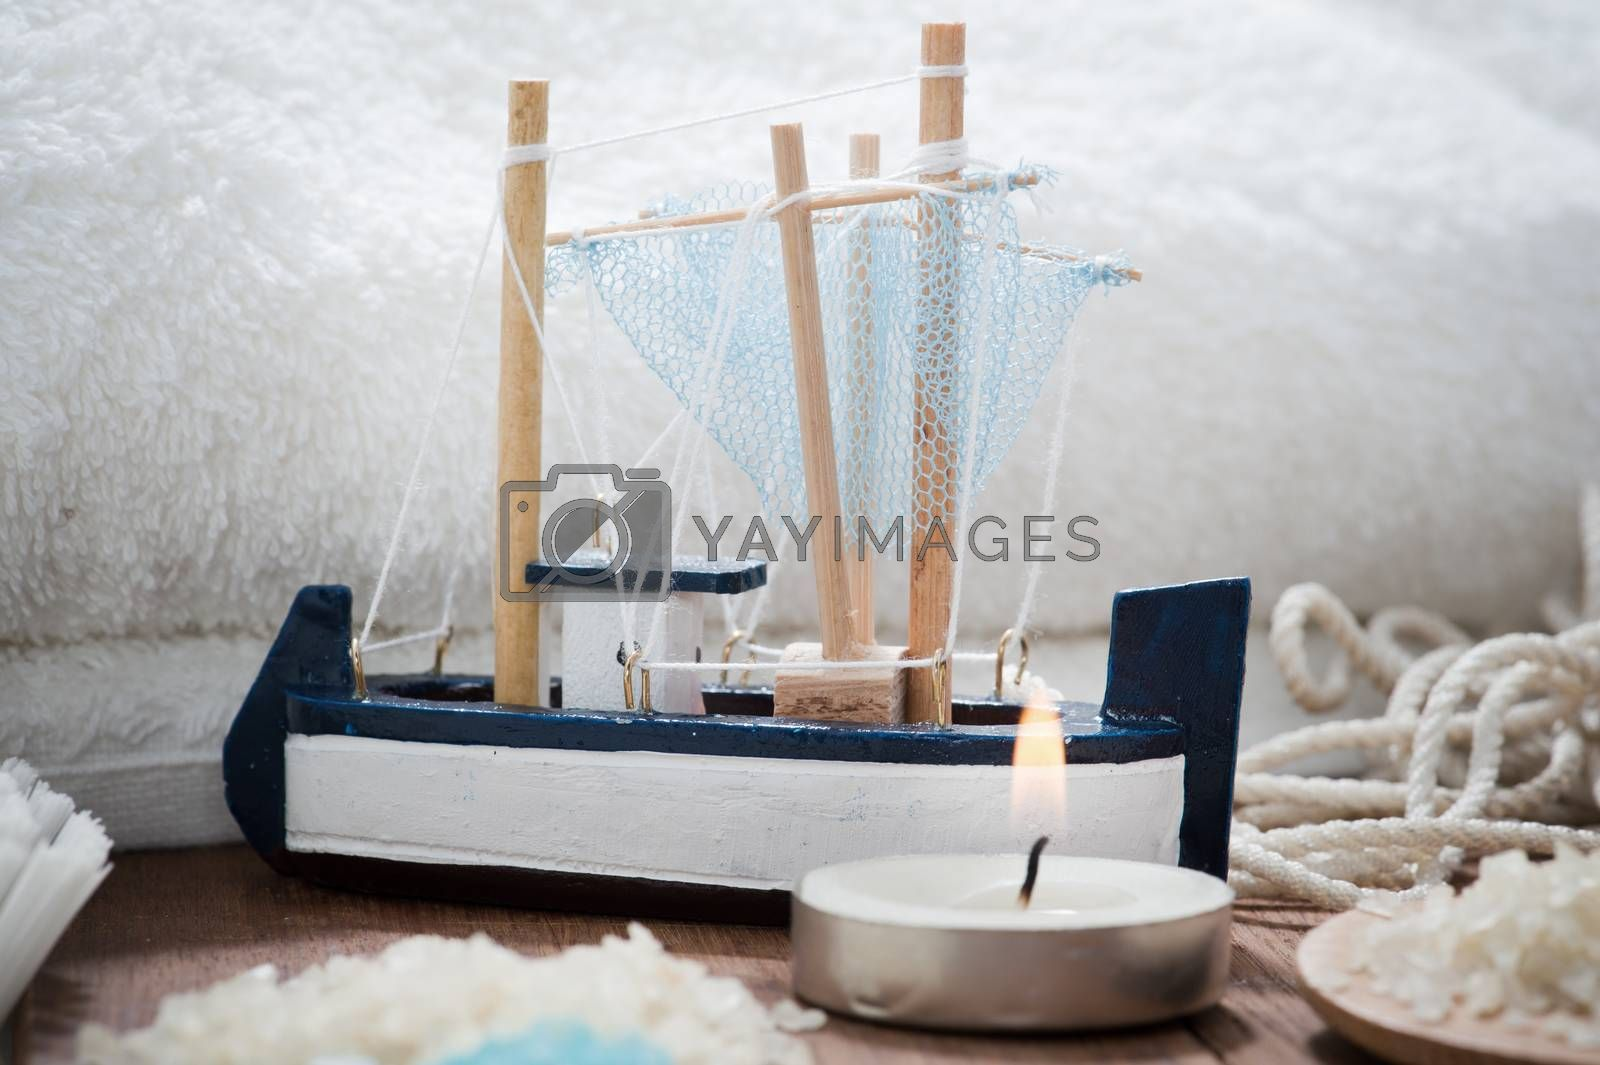 Bathroom Spa Set on wooden table with salt and candle